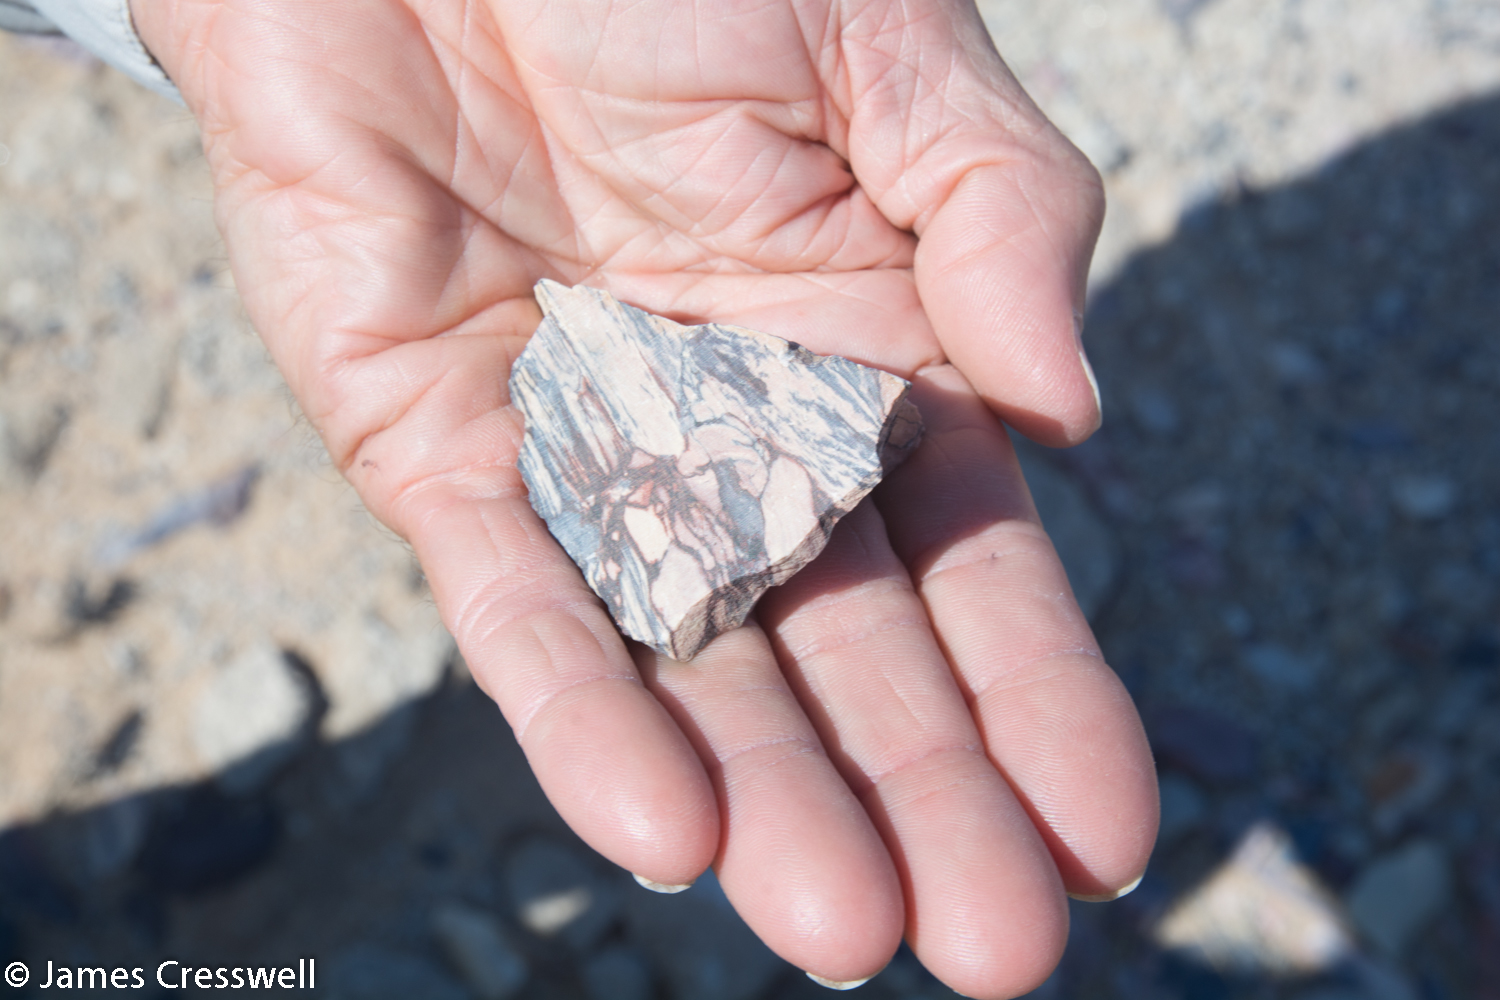 Pyrophyllite it is a metamorphic rock (a hornfel) that was once a lacustrine Karoo sediment. It was brecciated (broken up) by the Brandberg granite busting through and was contact metamorphosed. It forms a beautiful rock that was once mined as ornamental stone. Namibia.